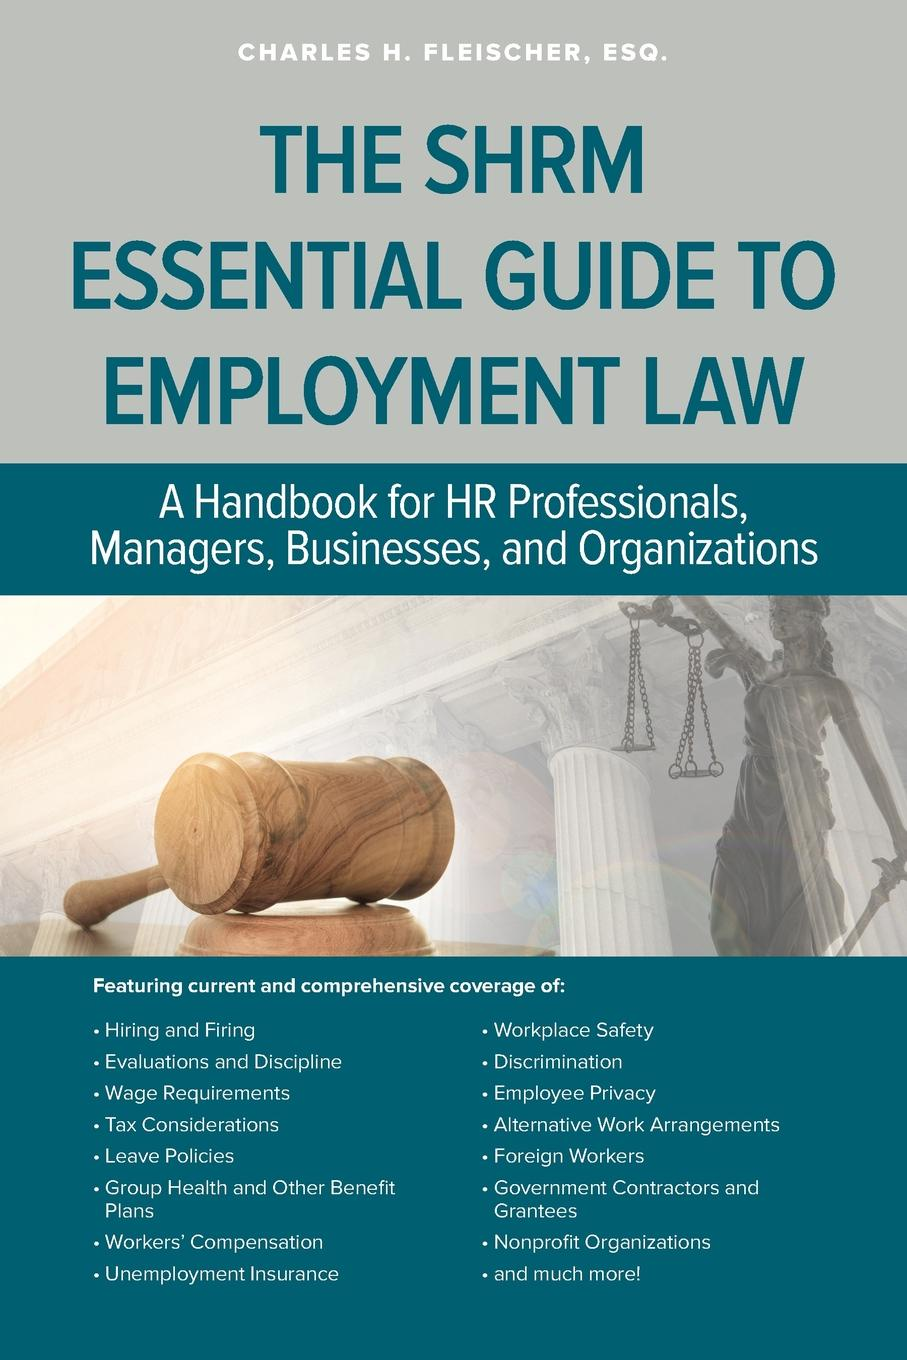 Charles Fleischer SHRM Essential Guide to Employment Law dana muir m a manager s guide to employment law how to protect your company and yourself